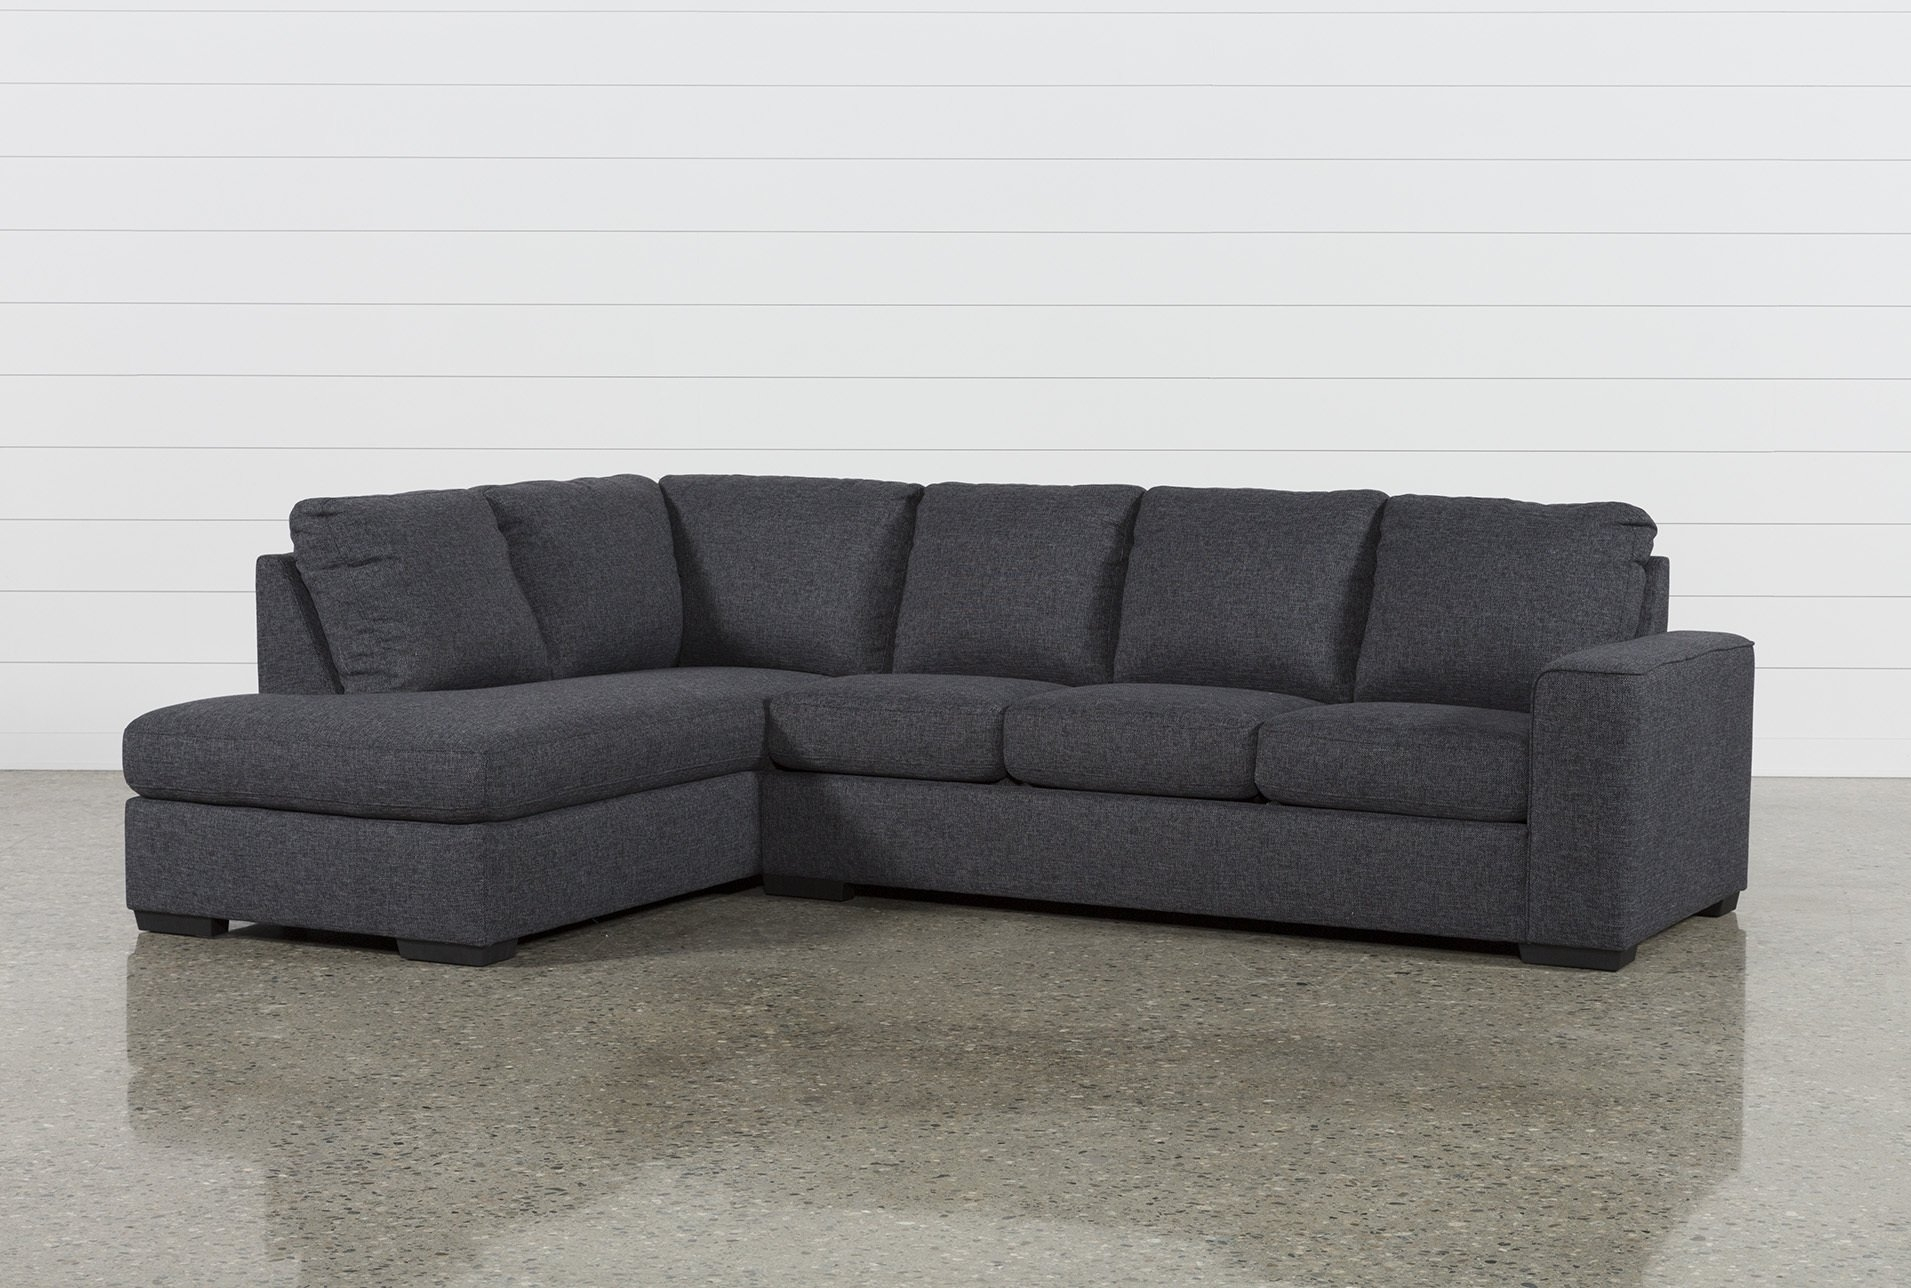 Lucy Dark Grey 2 Piece Sectional W/laf Chaise | Dark Grey And Products In Aspen 2 Piece Sleeper Sectionals With Laf Chaise (View 2 of 25)